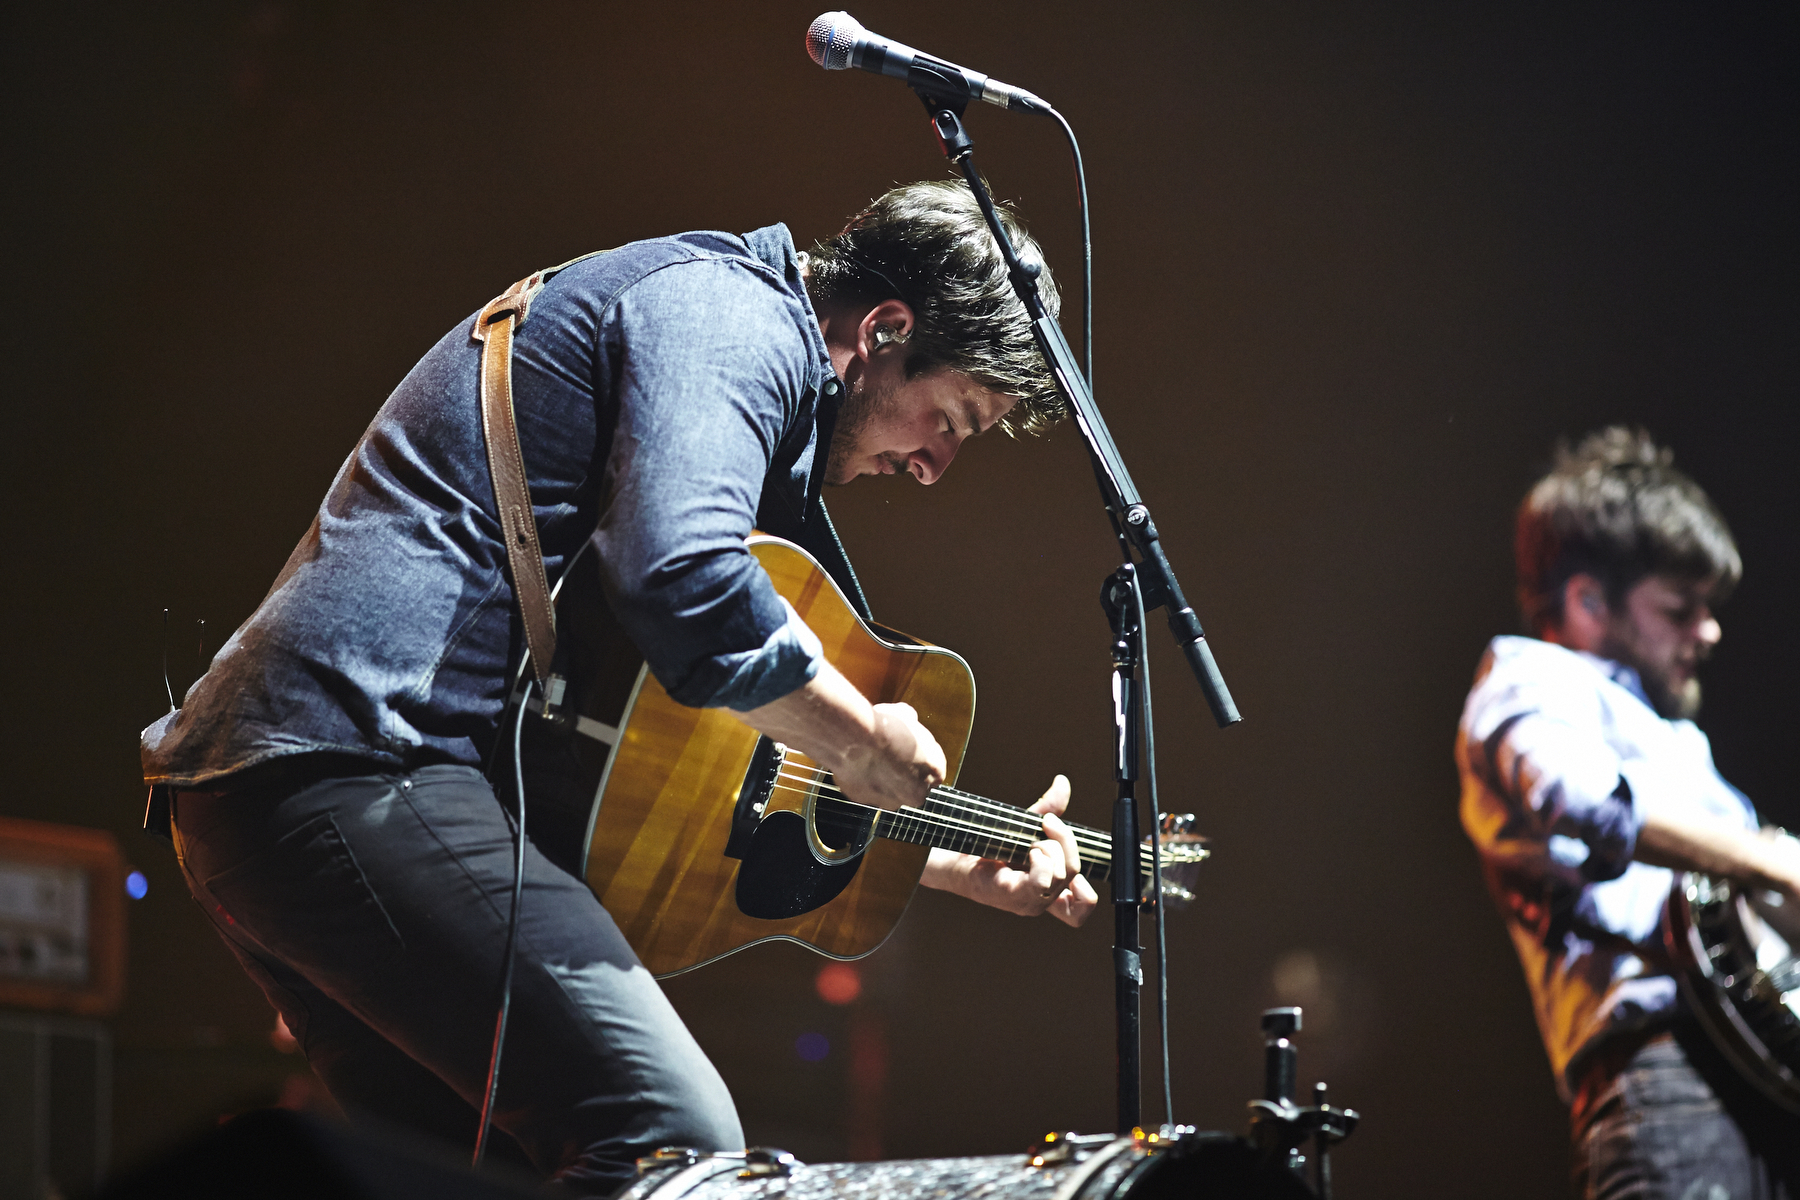 Mumford_And_Sons_At_Xcel_Energy_Center_By_Joe_Lemke_Medium_Res_014.JPG